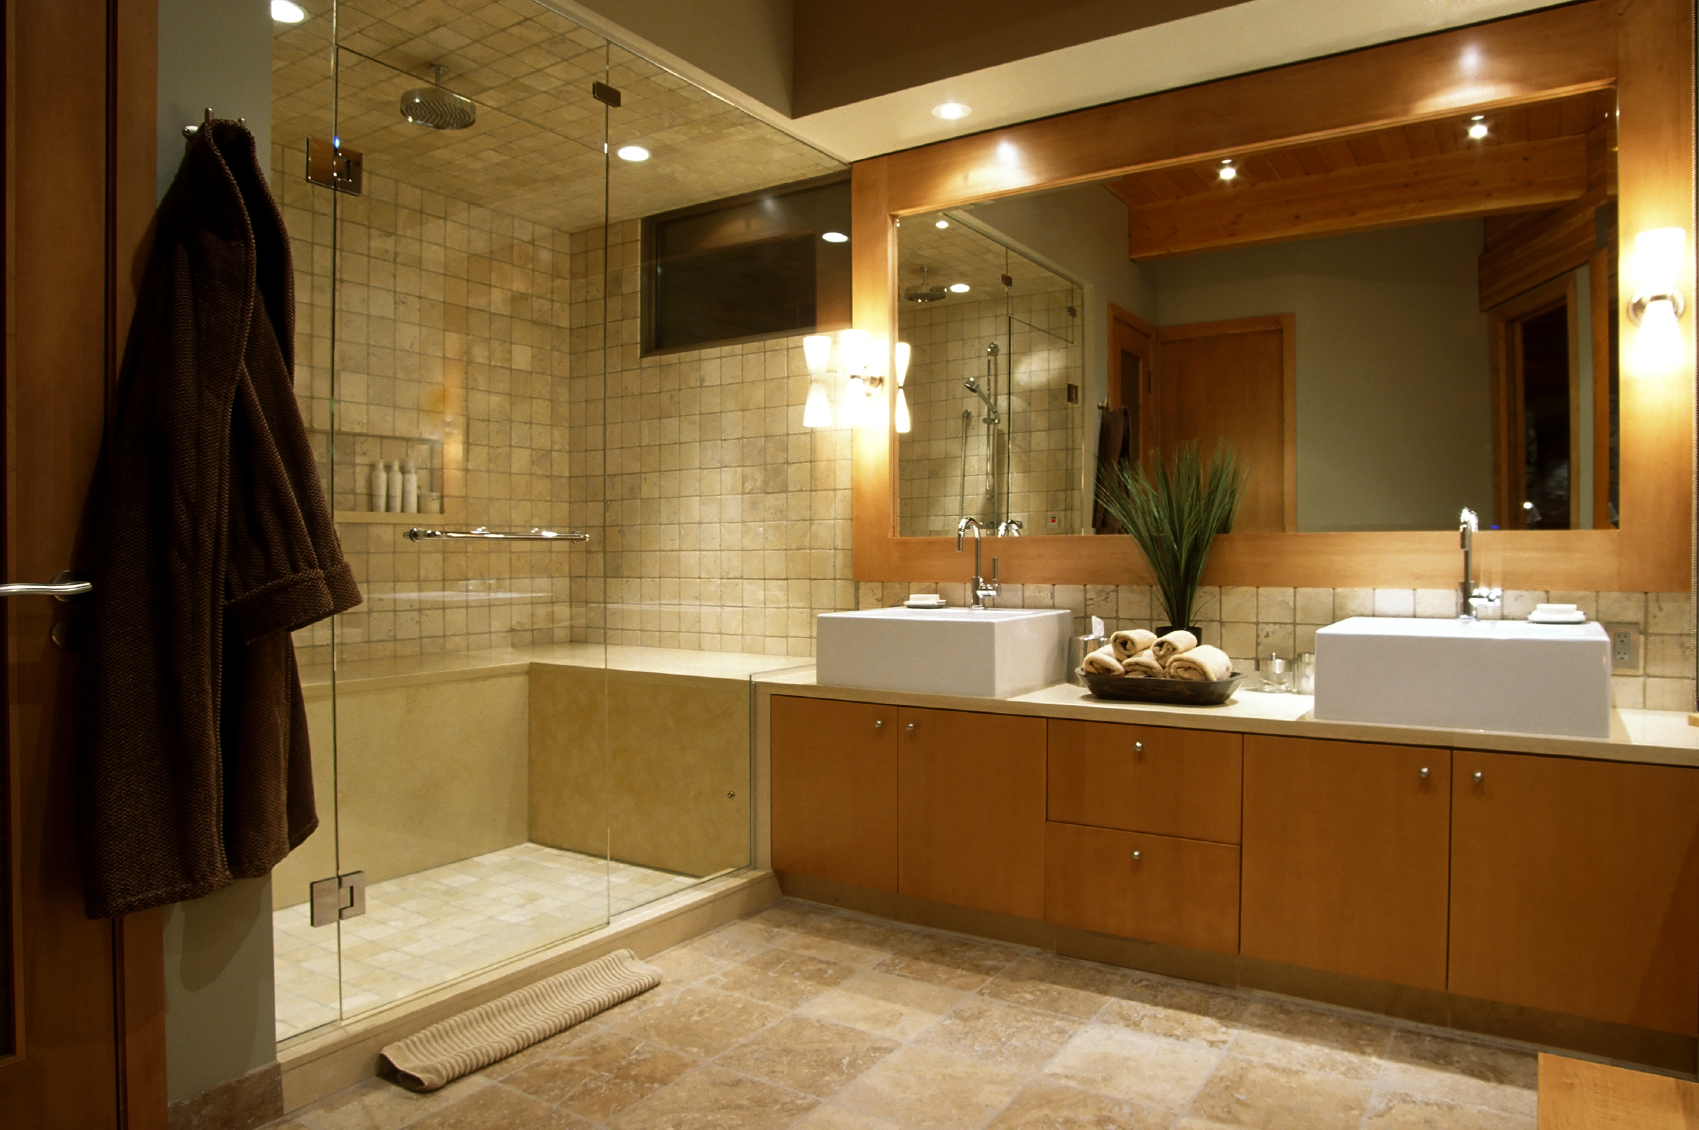 Bathroom remodeling los angeles bathroom designer for Los angeles bathroom remodeling contractor